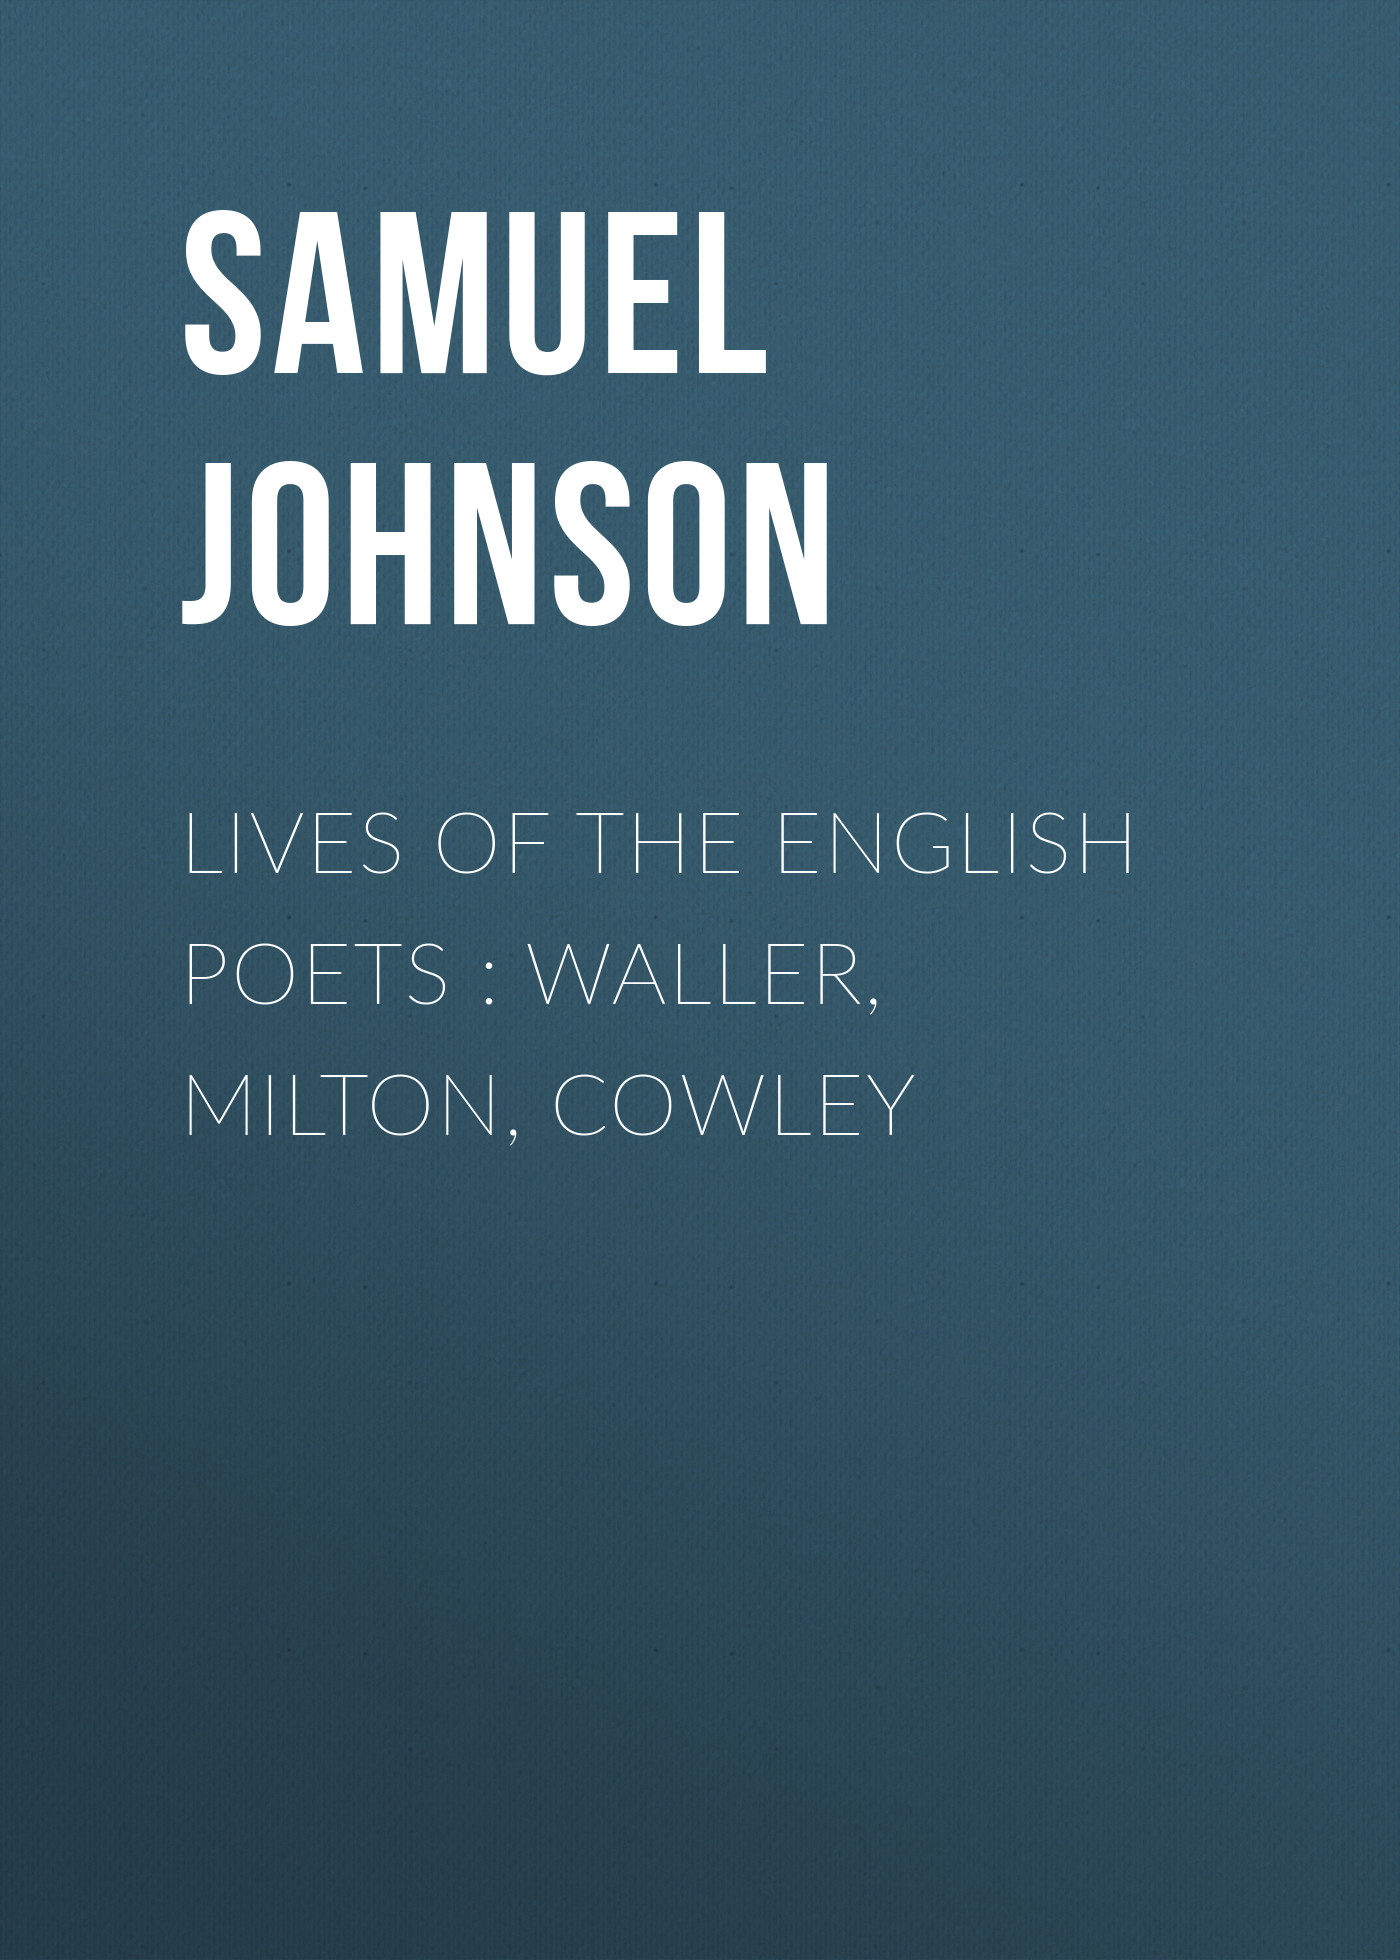 Samuel Johnson Lives of the English Poets : Waller, Milton, Cowley milton john remarks on johnson s life of milton to which are added milton s tractate of education and areopagitica